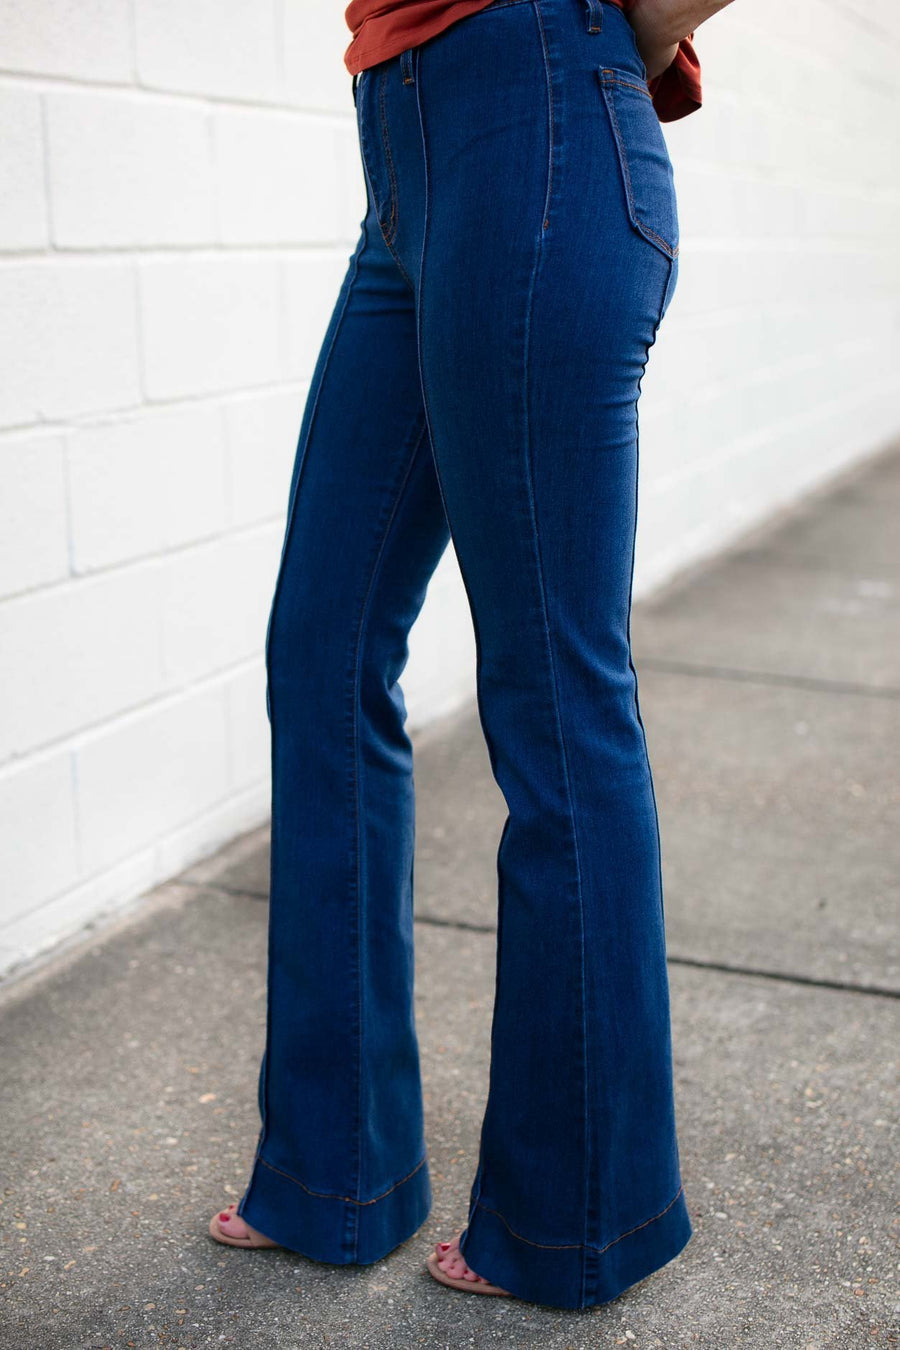 Bottoms And So It Goes Retro Flare Jeans - Lotus Boutique